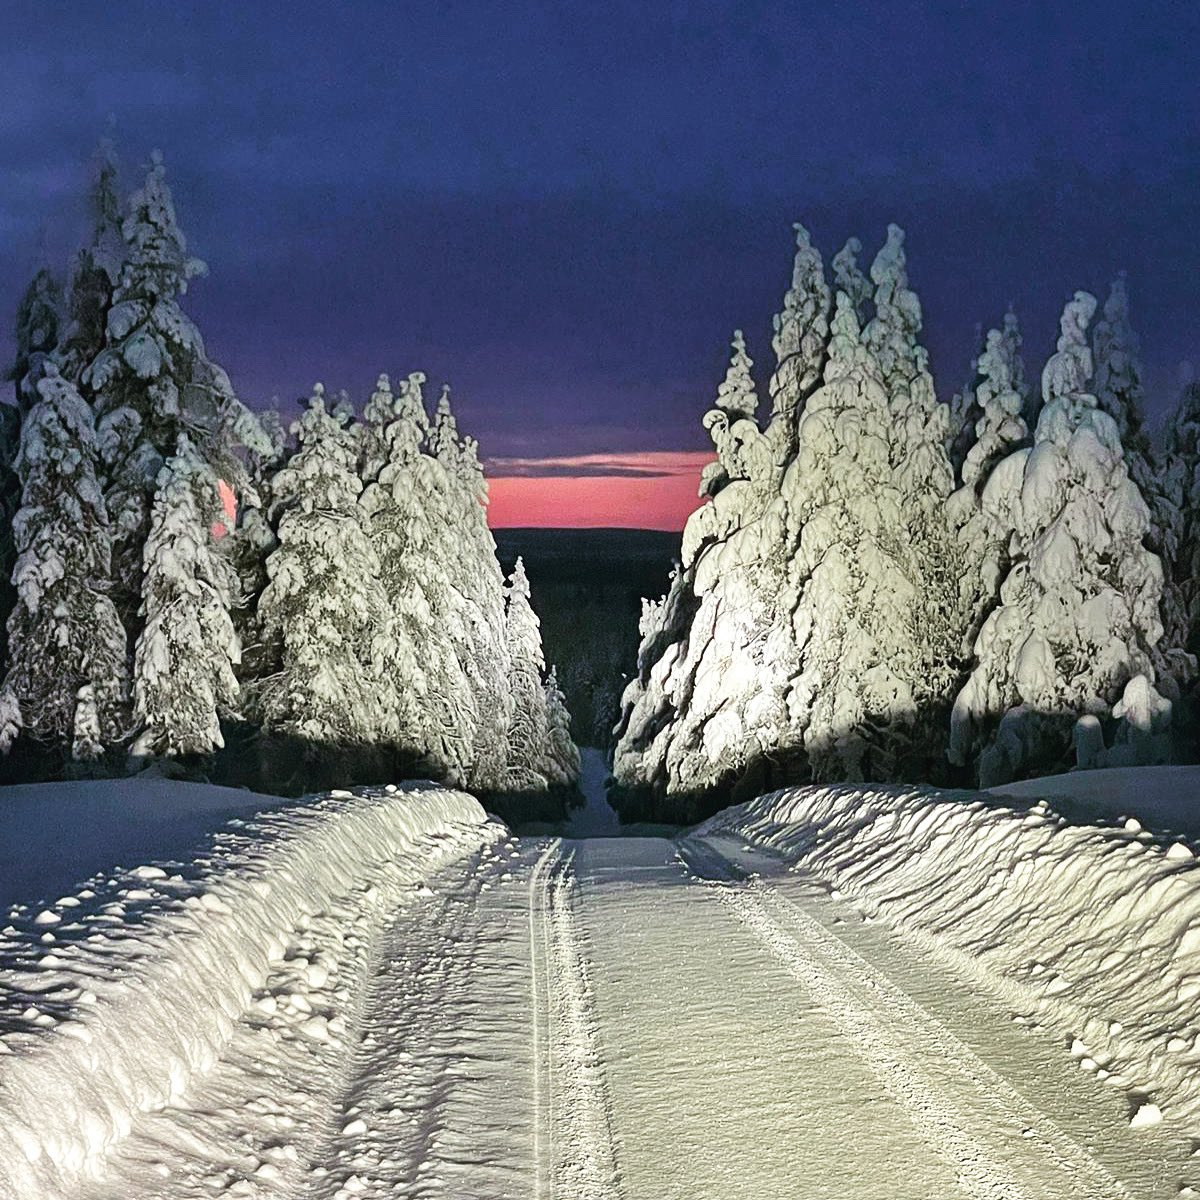 WRC: Arctic Rally Finland - Powered by CapitalBox [26-28 Febrero] Etj32AgXEAMhI65?format=jpg&name=medium